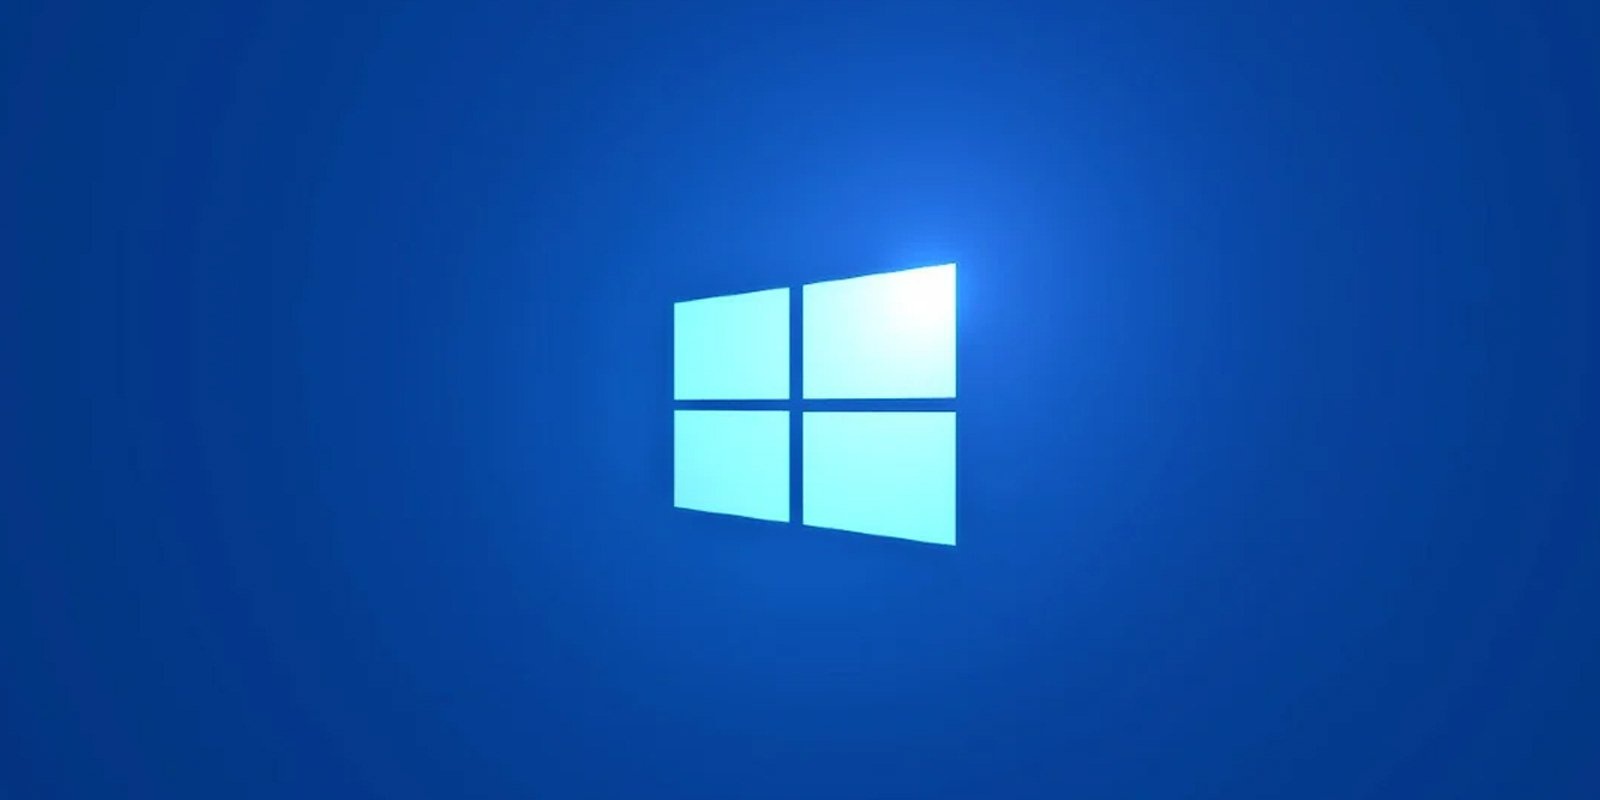 Can't Download Windows 10 21H2? Here's How to Get It